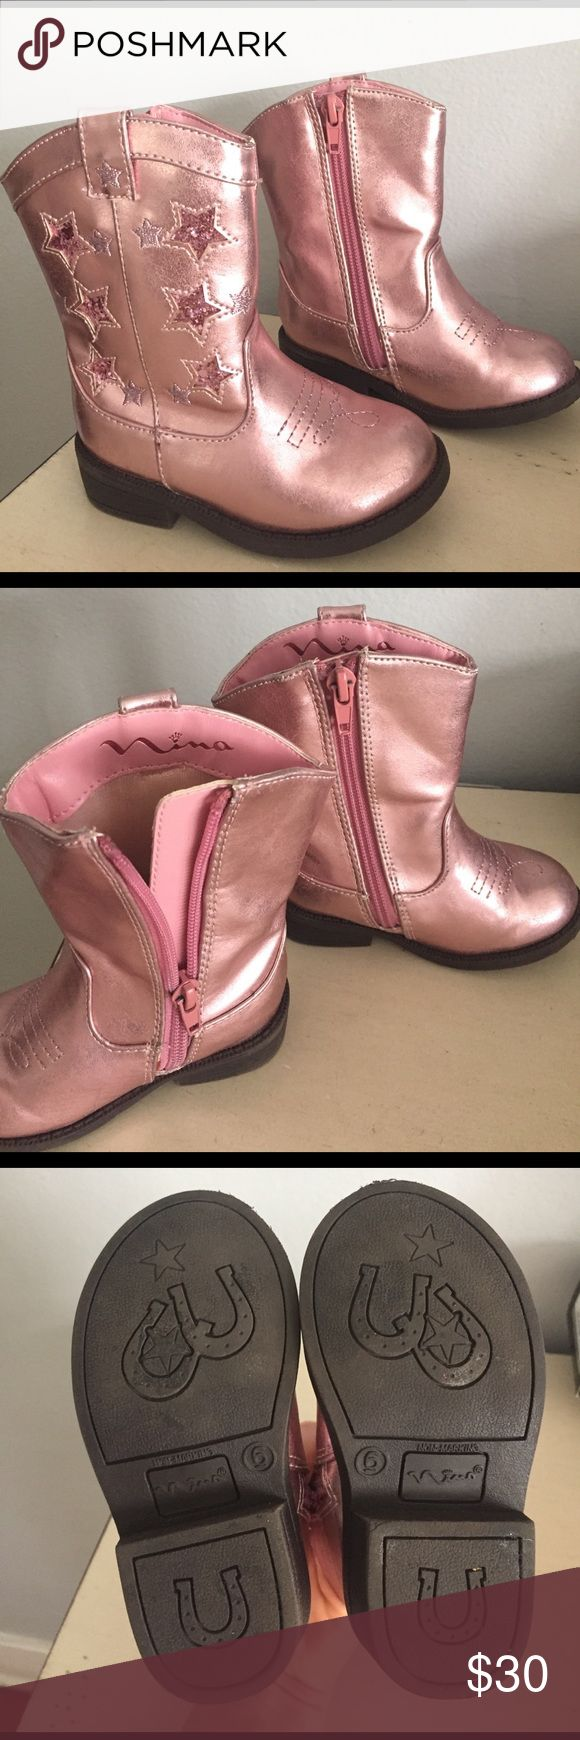 Nina Kelis cowboy pink cowgirl boots star design So cute she'll never take them off! The Kelis Star western boot from Nina is one show stopping boot that will make all eyes turn to her when she enters the room, thanks to the fun metallic upper and glitter accents. There is some slight wear as you can (hardly) see in the pics. One tiny scuff on the toe & on the top front fold Metallic synthetic upper Pull-on style, side zipper for secure fit Side pull tab for easy on and off Glitter star…